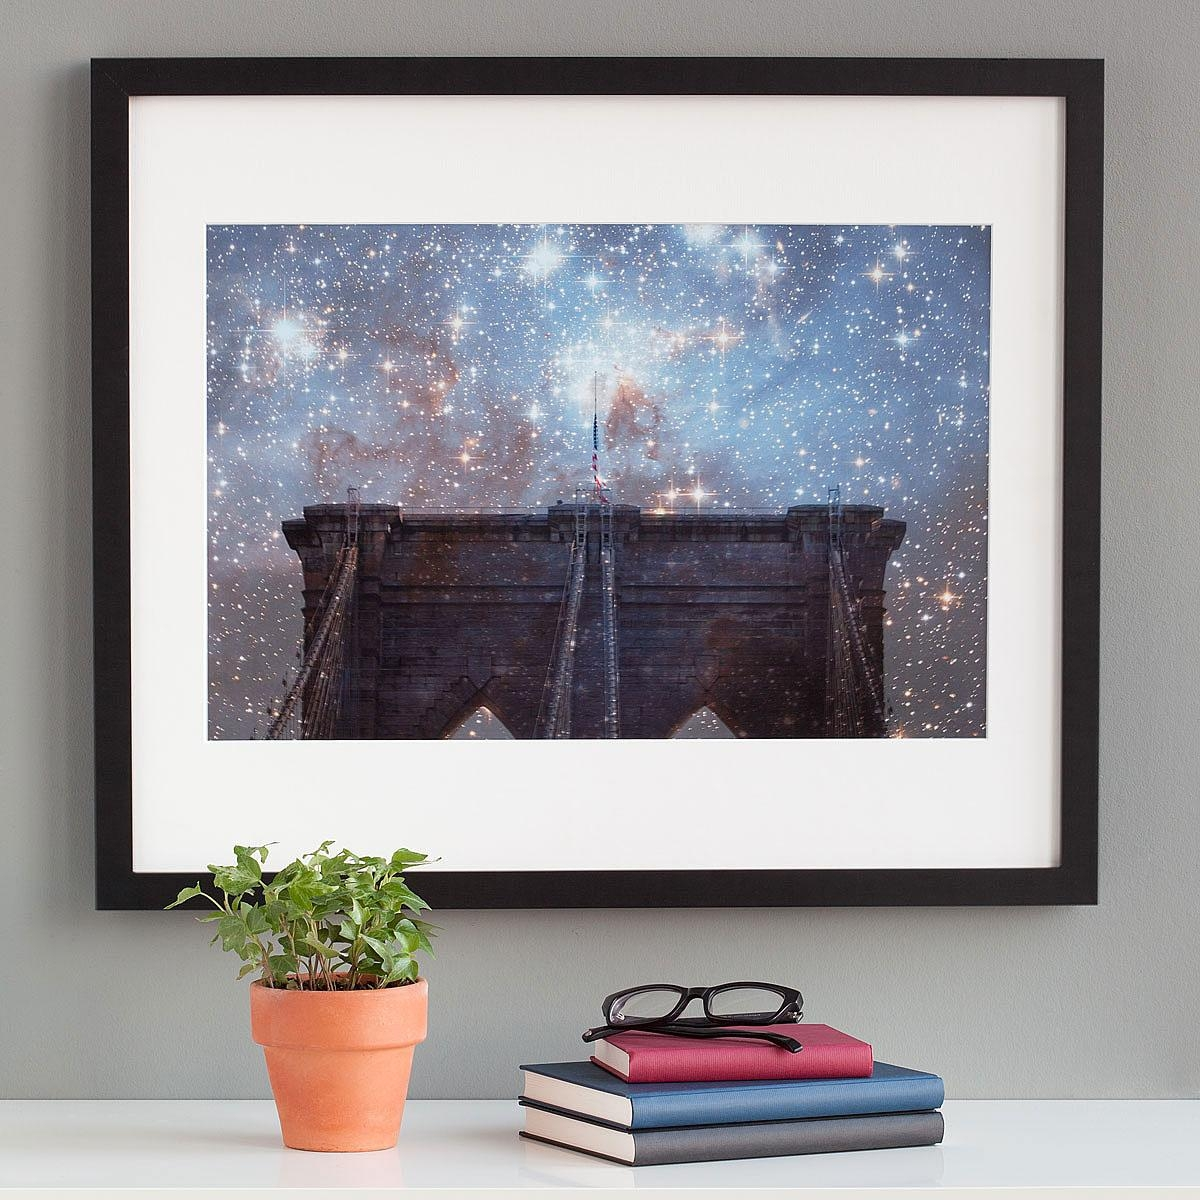 Unique Photography Art, Photo Wall Art | Uncommongoods in Photography Wall Art